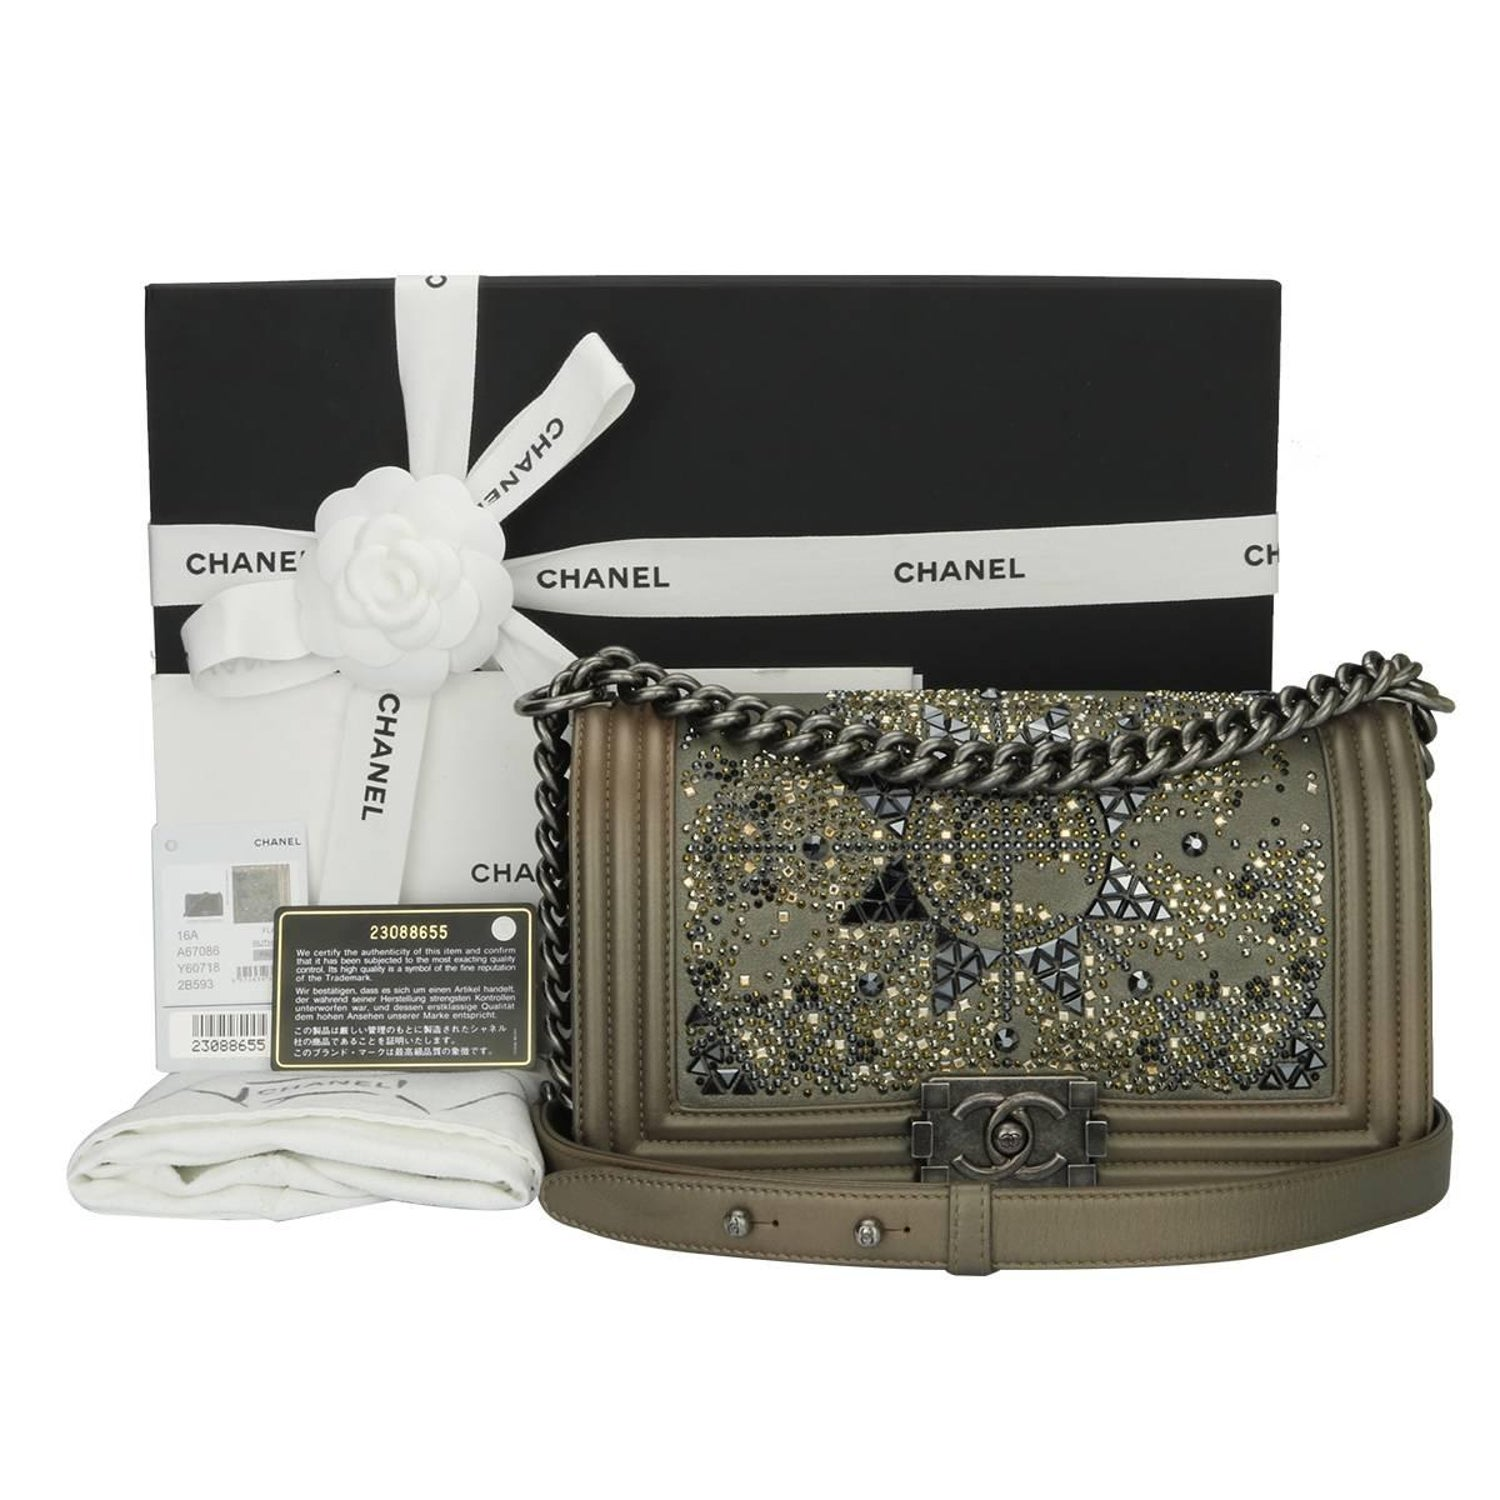 035326948178 Chanel Old Medium Crystal Boy Metallic Bronze Ruthenium Hardware Goatskin  Bag For Sale at 1stdibs